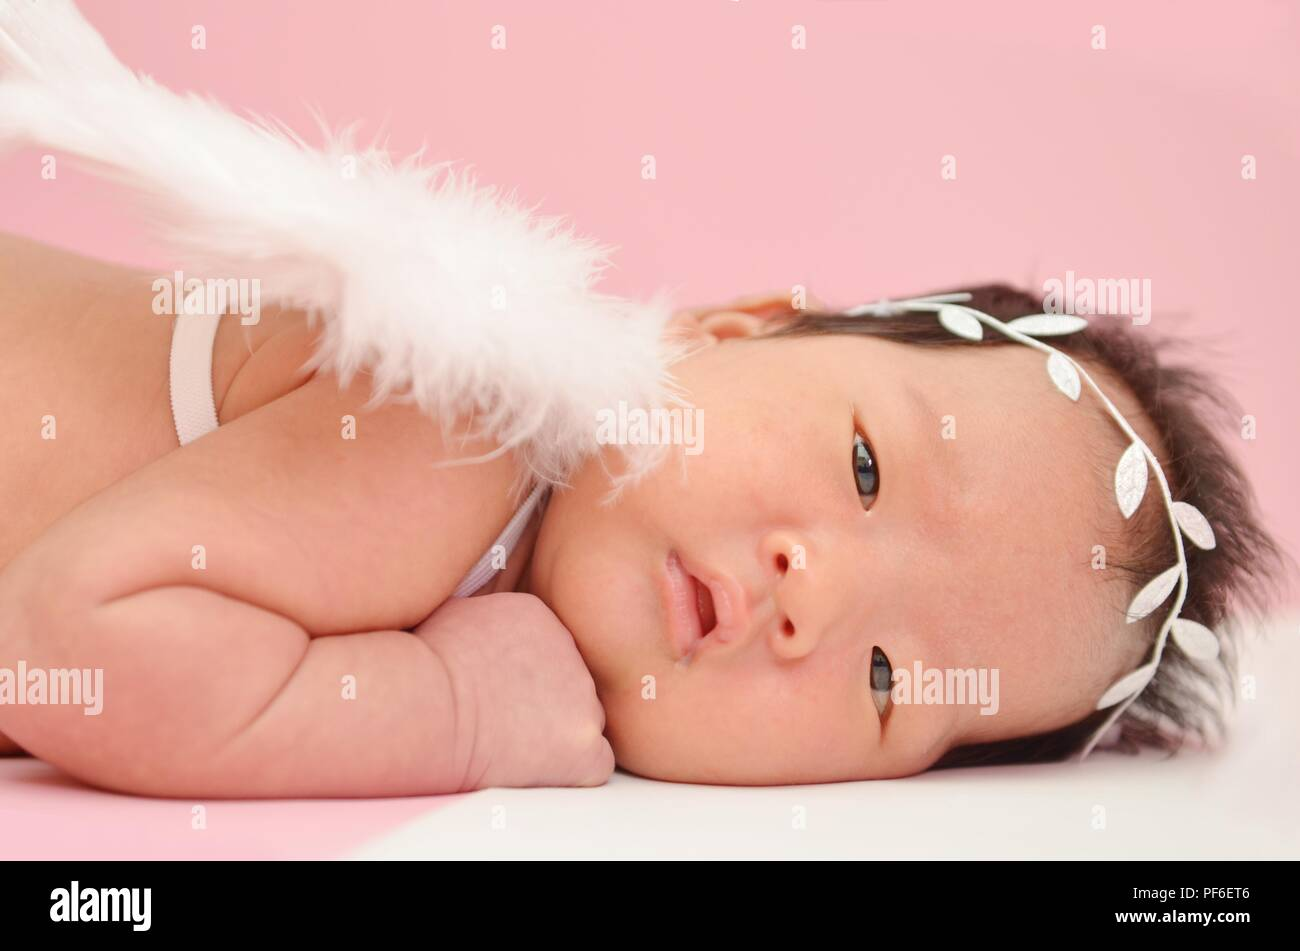 Congratulate, very Cute chinese baby girl naked